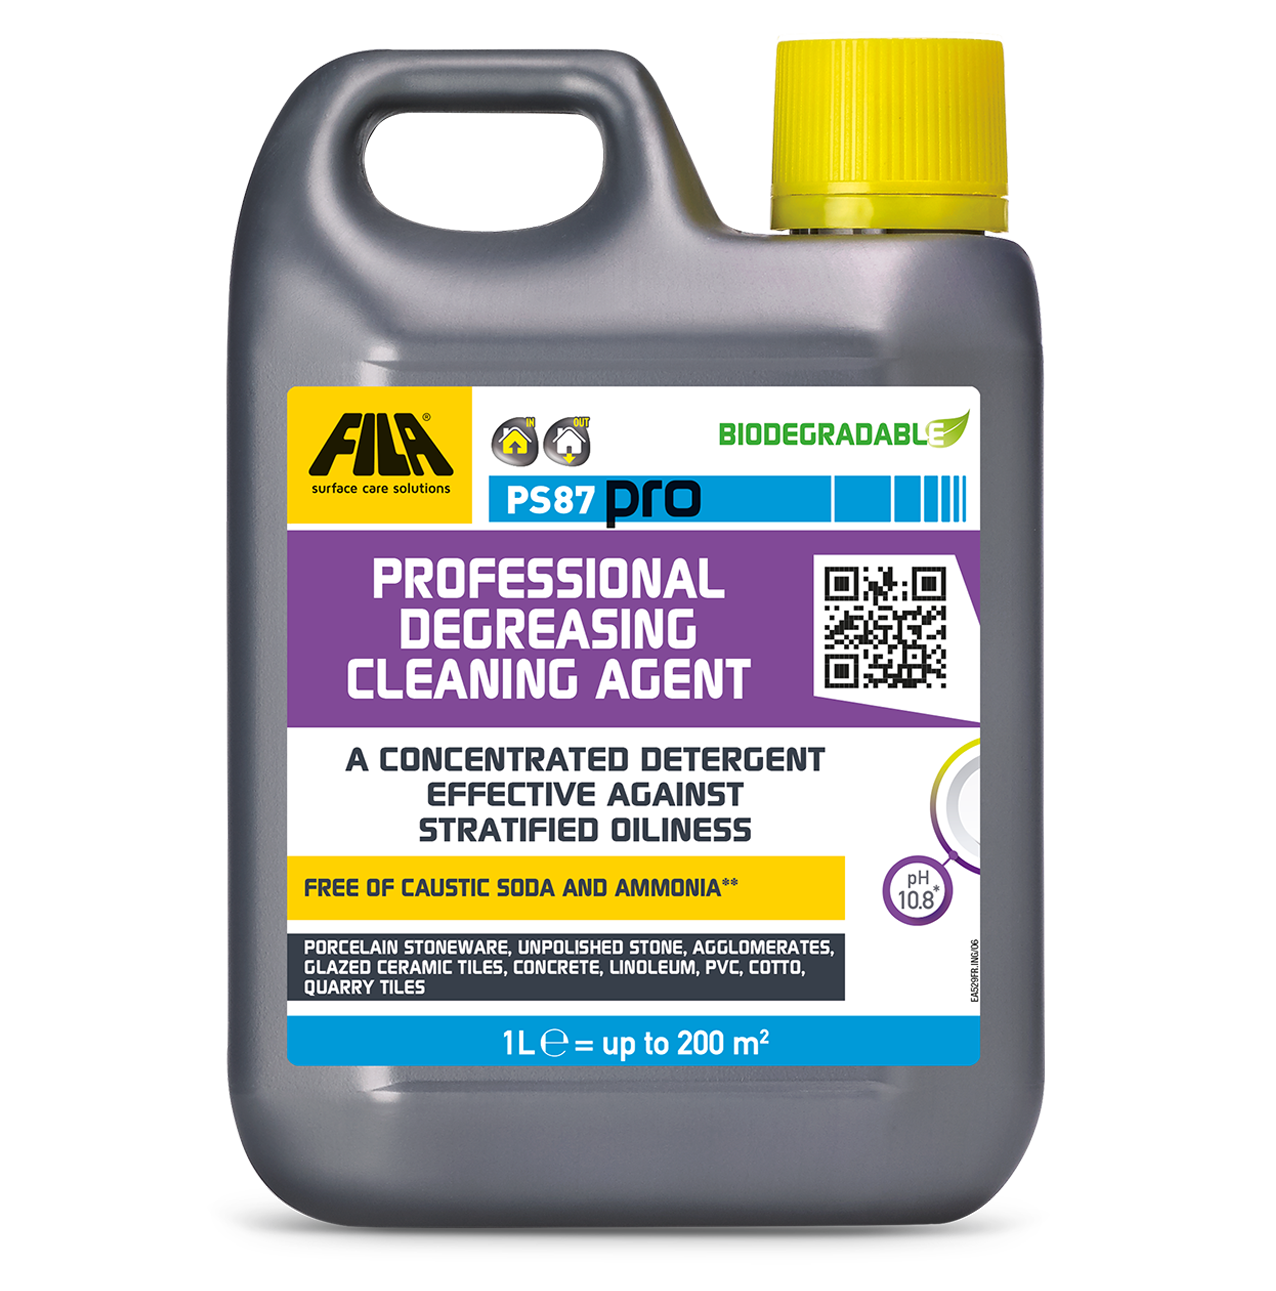 Thumbnail PS87 PRO - Professional degreasing cleaning agent